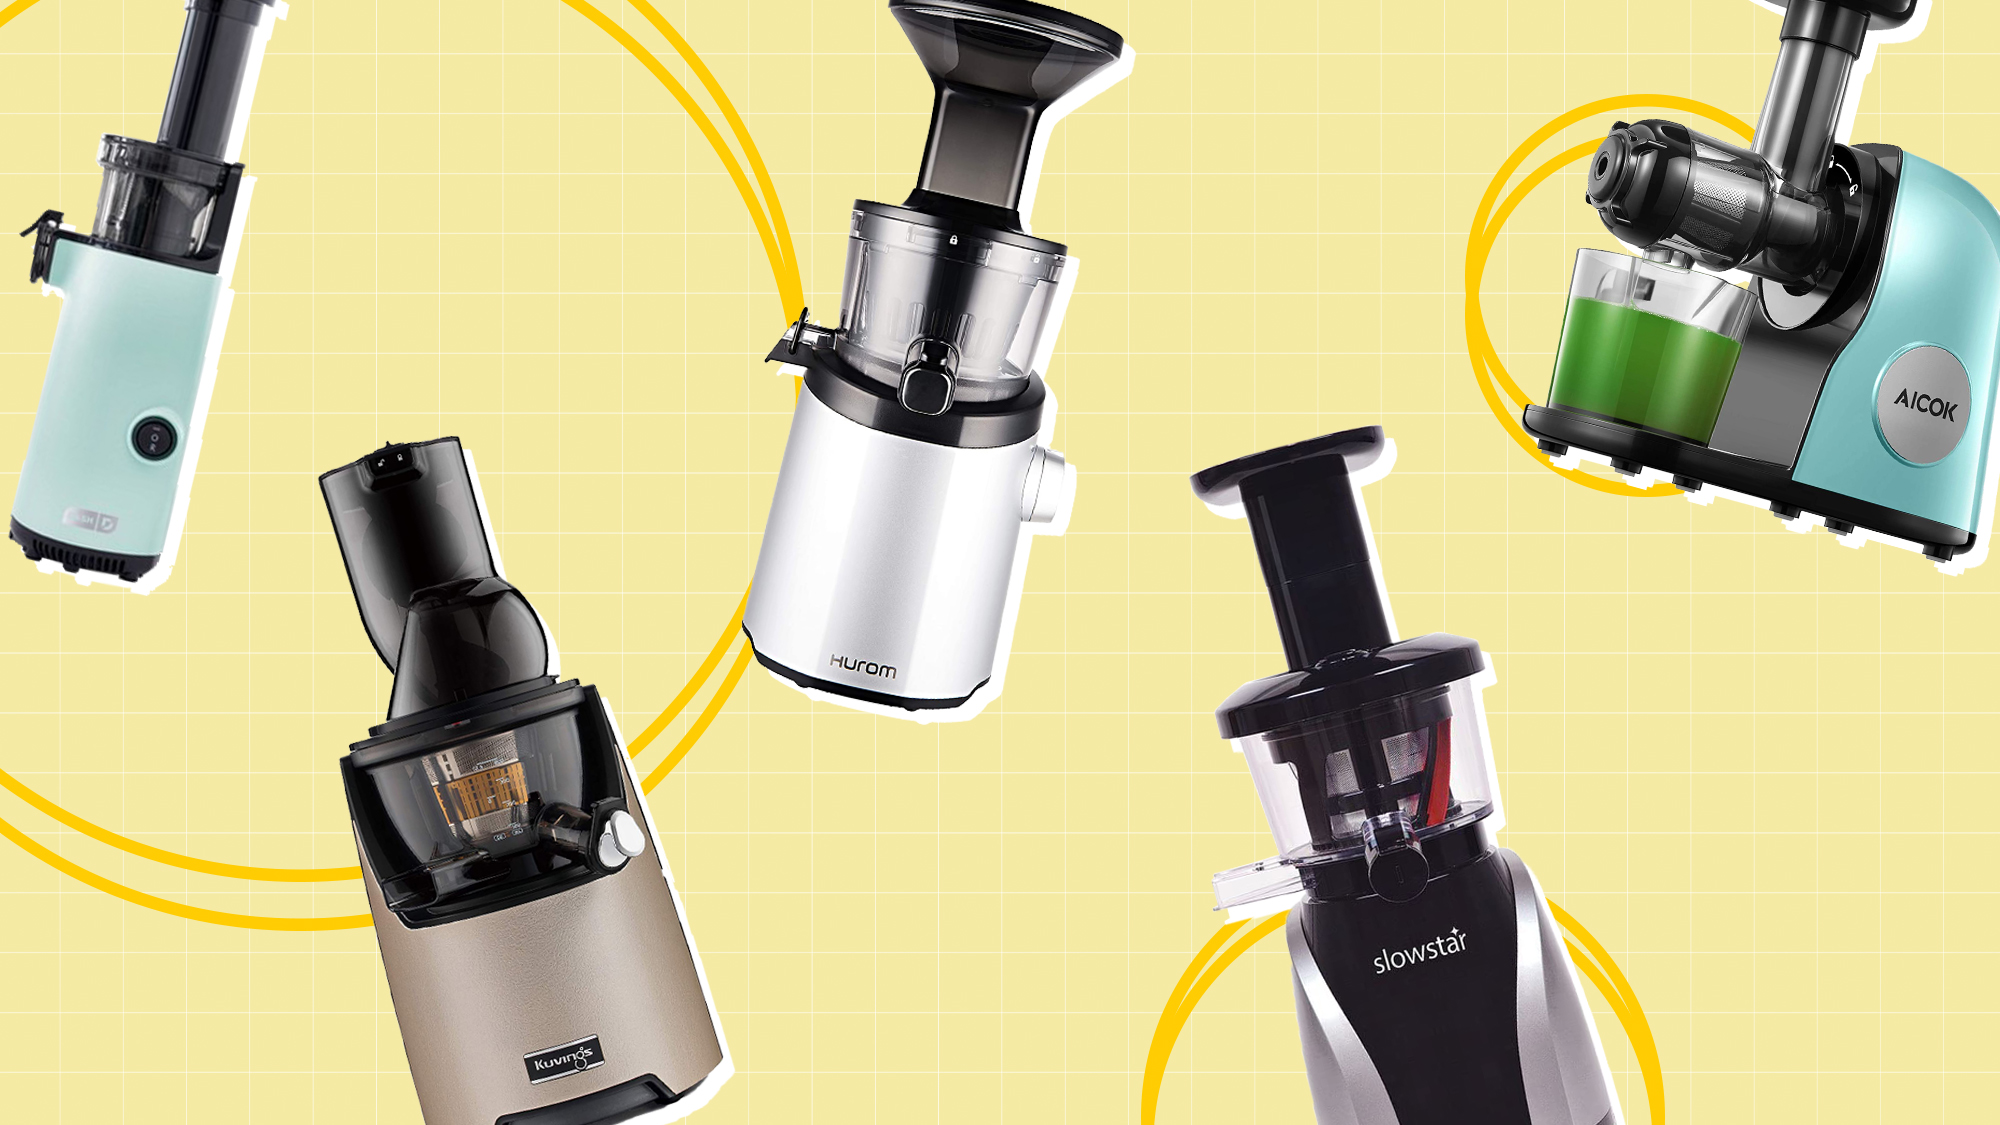 A selection of 5 juicers on a designed background